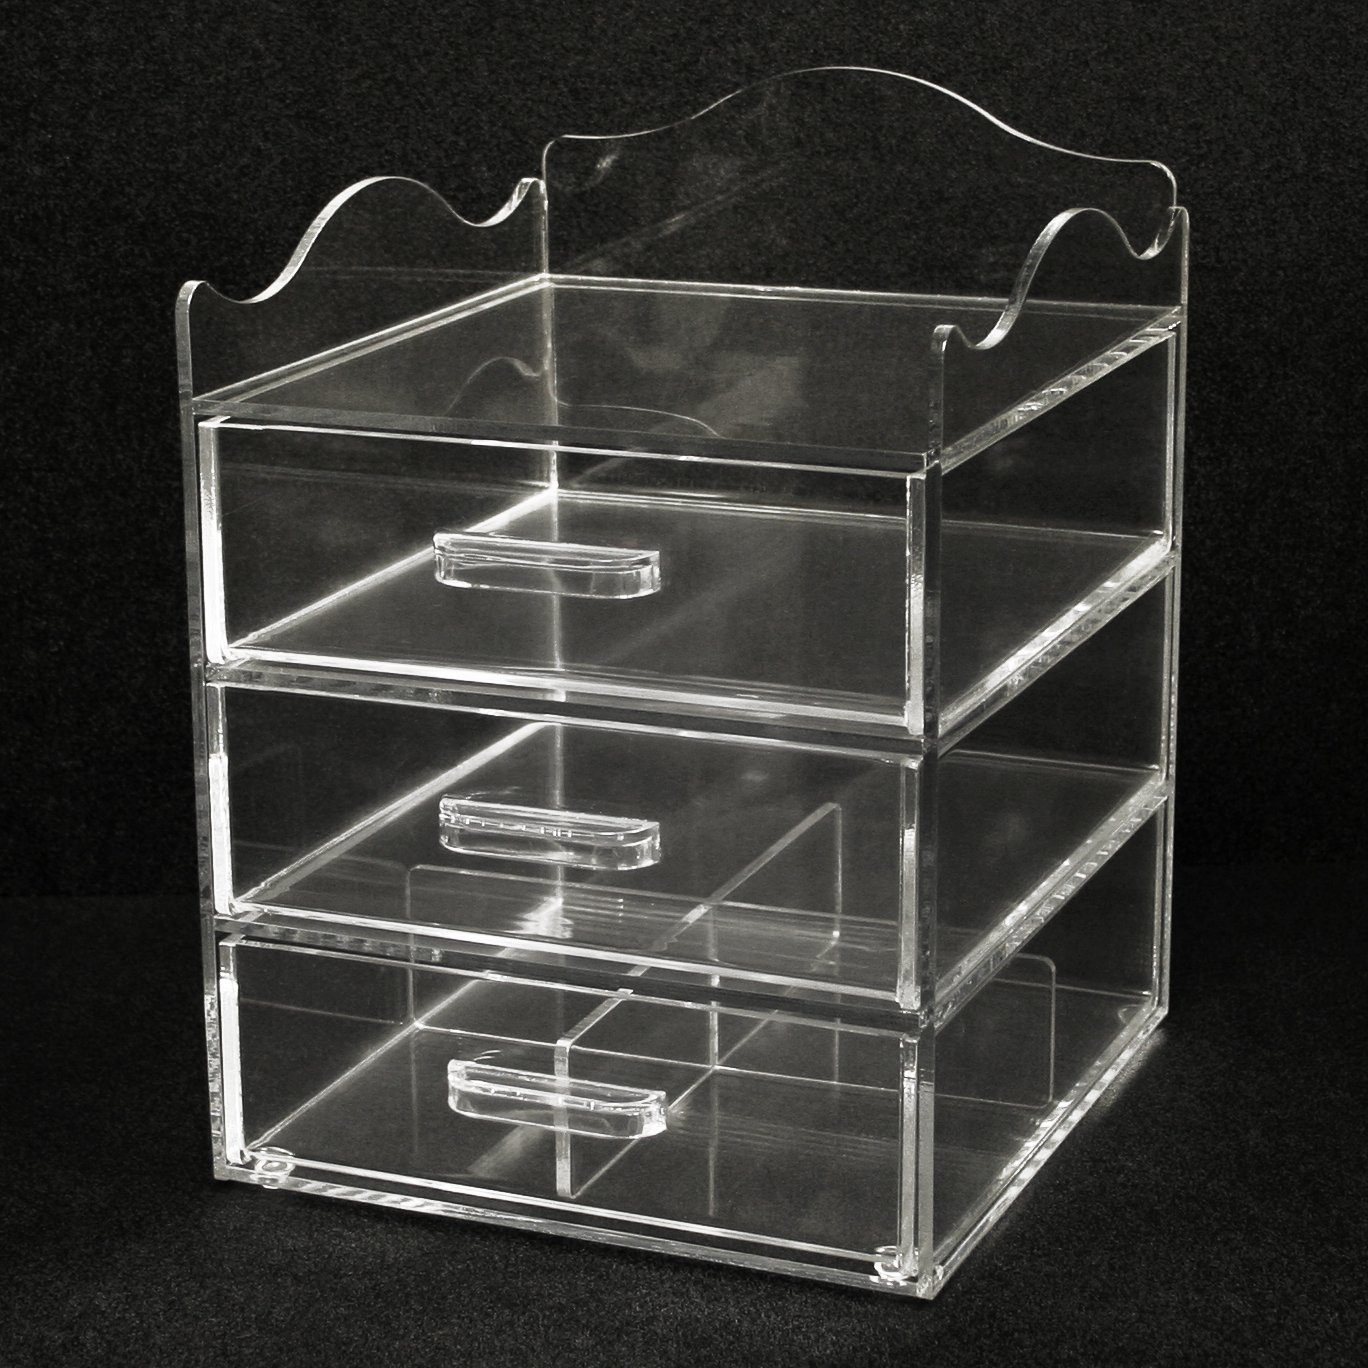 Clear Acrylic Makeup & Cosmetic Organizer, 9.5''W x10''D x 13''H, 3 Drawers with a Pretty Curved Edge on Top with Space for Storing Taller Items. Made in the USA! by PPM.